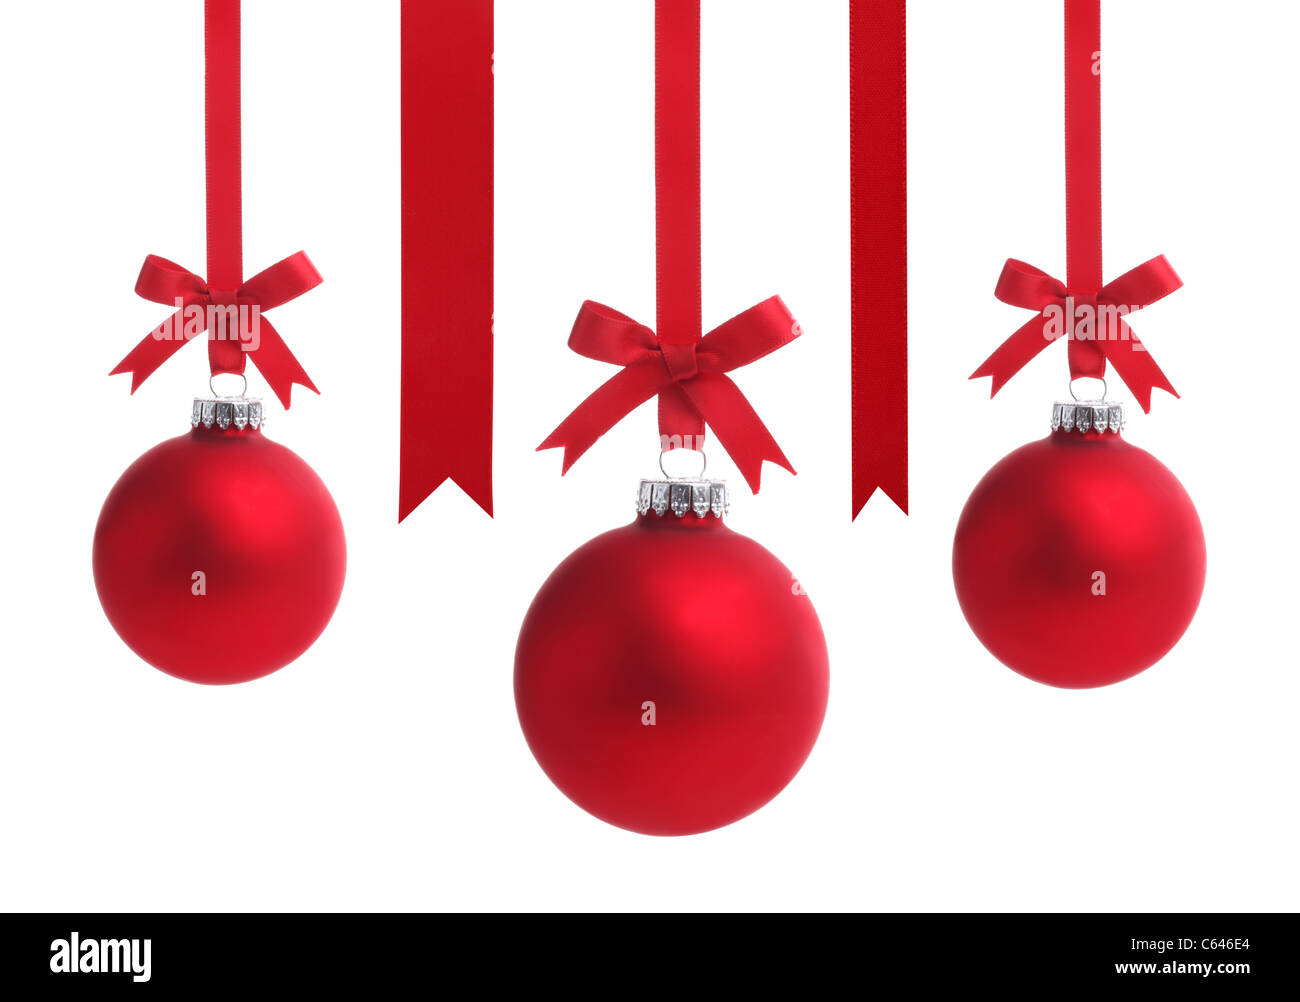 Red Christmas ball with ribbon bow,Isolated on white background. - Stock Image